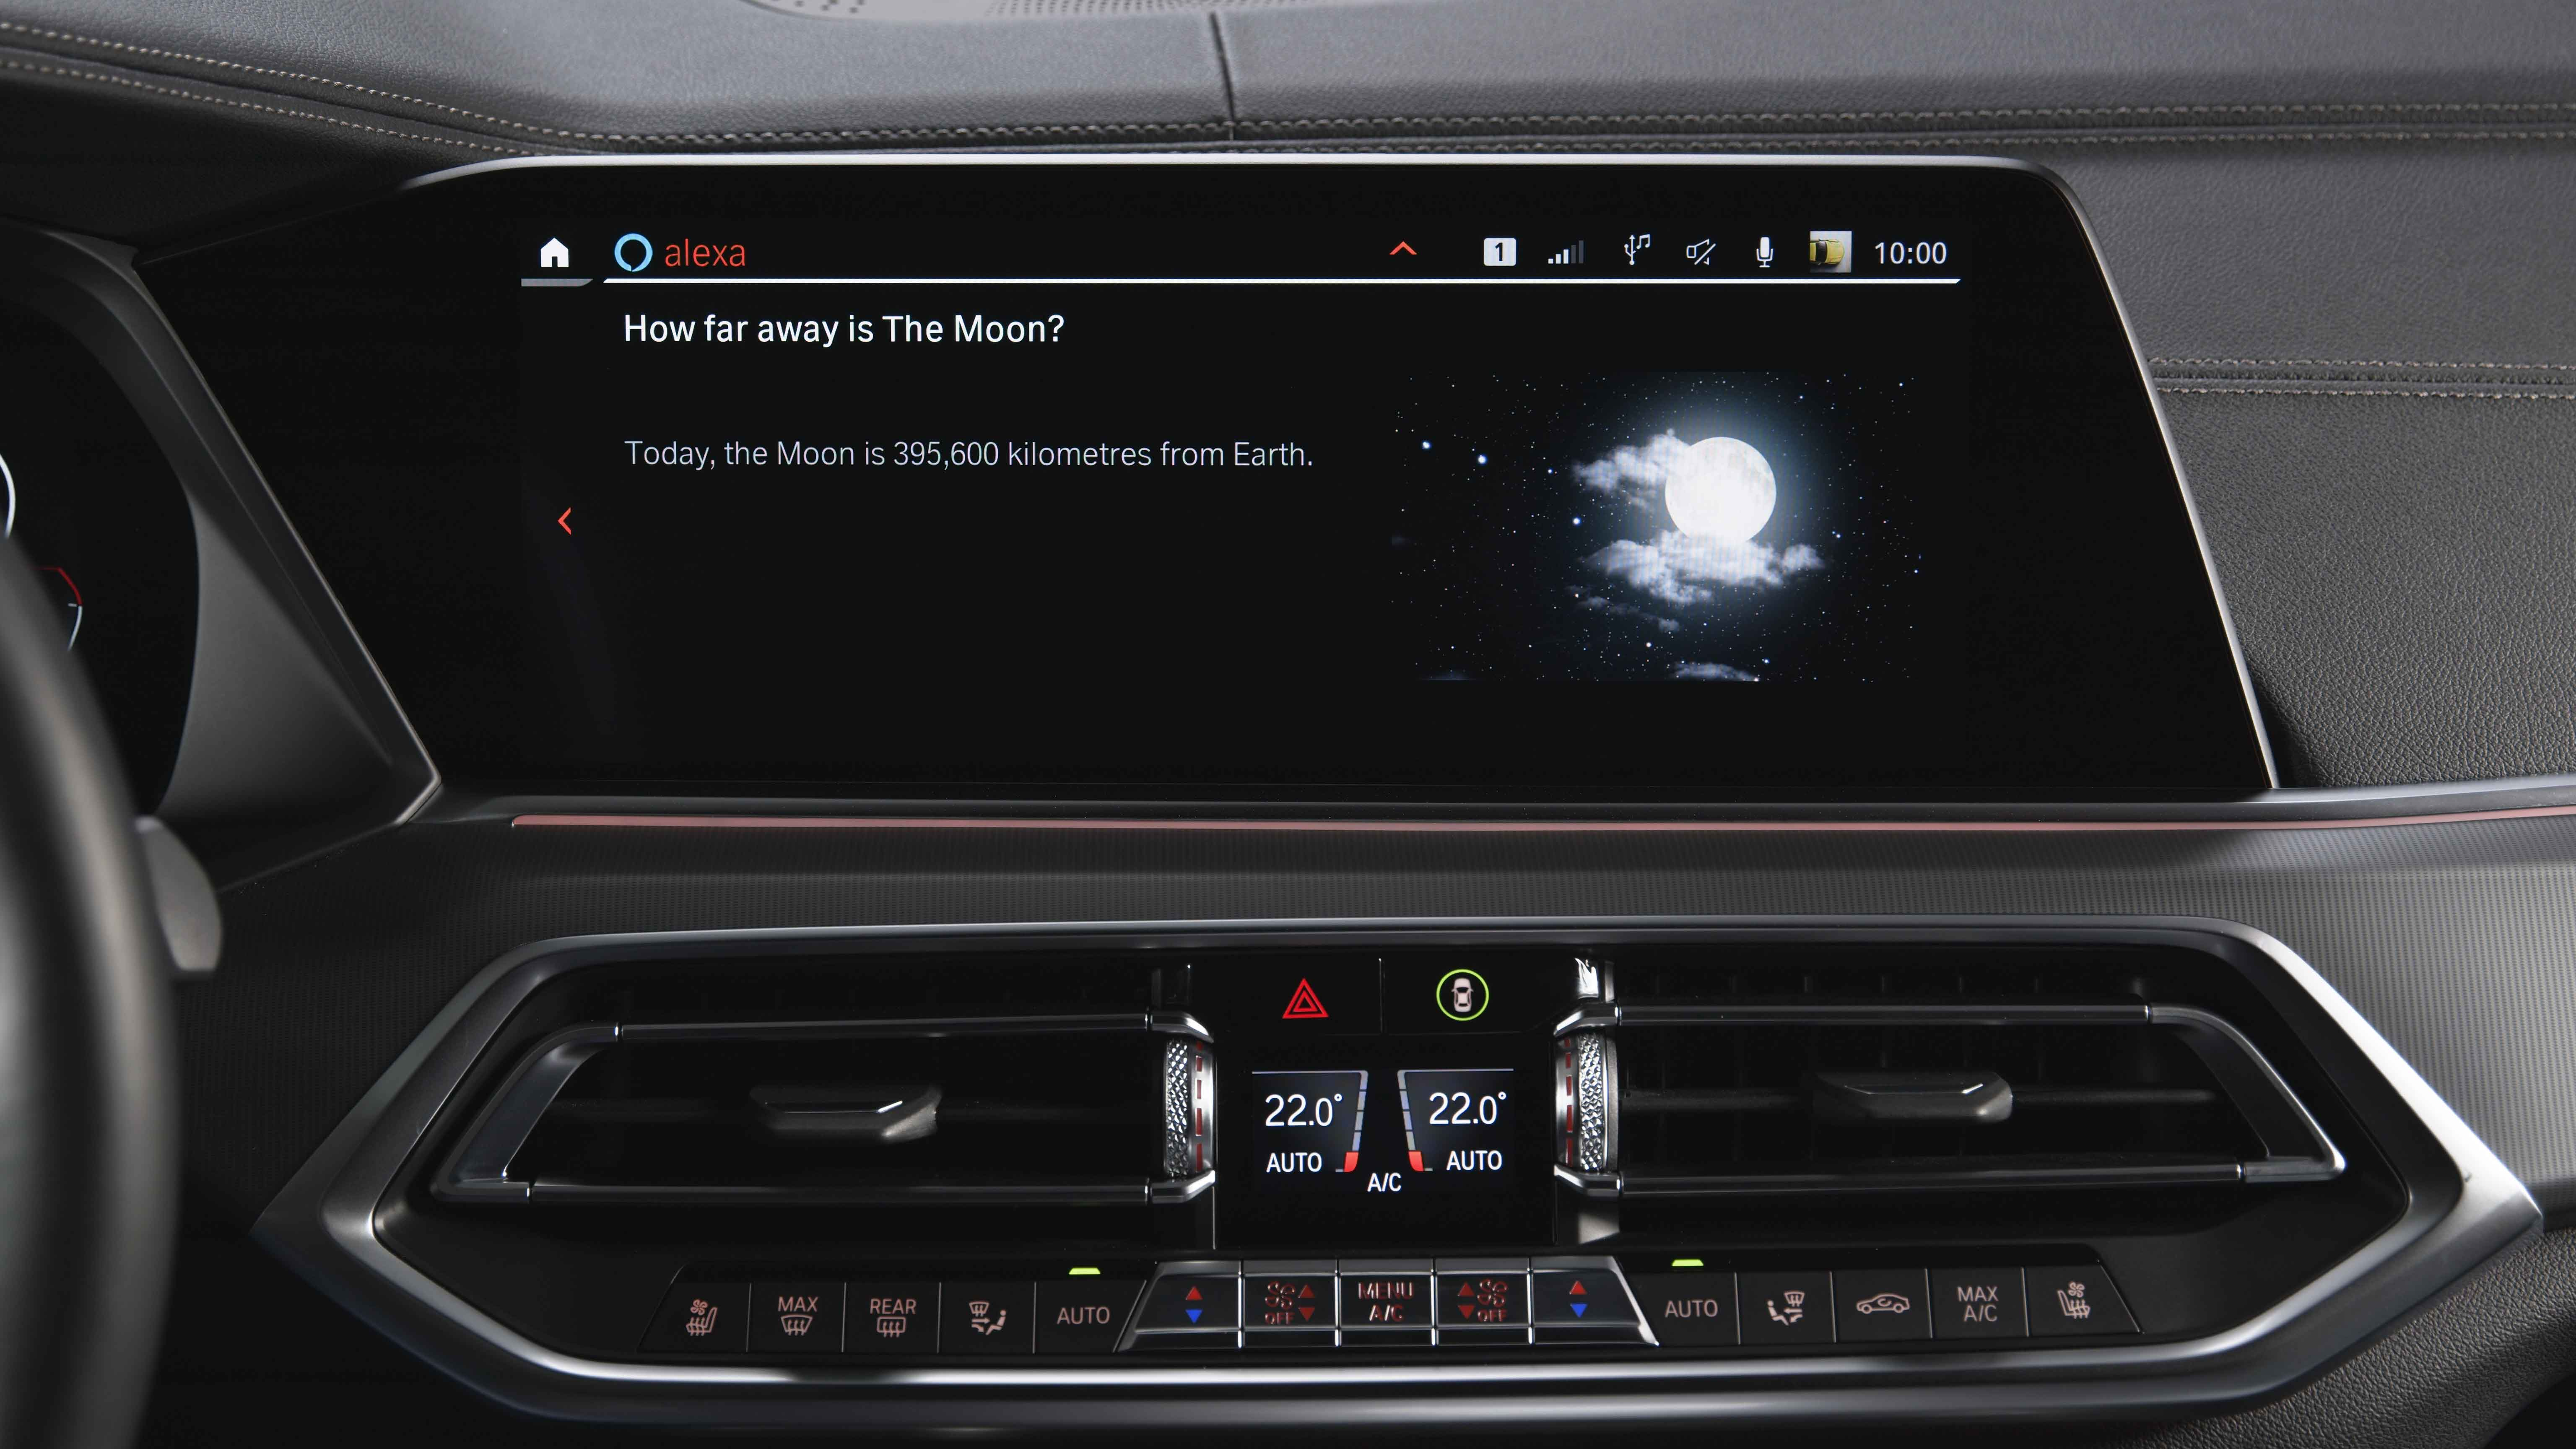 New BMW Remote Software Upgrade for 1.3 Million BMW Vehicles